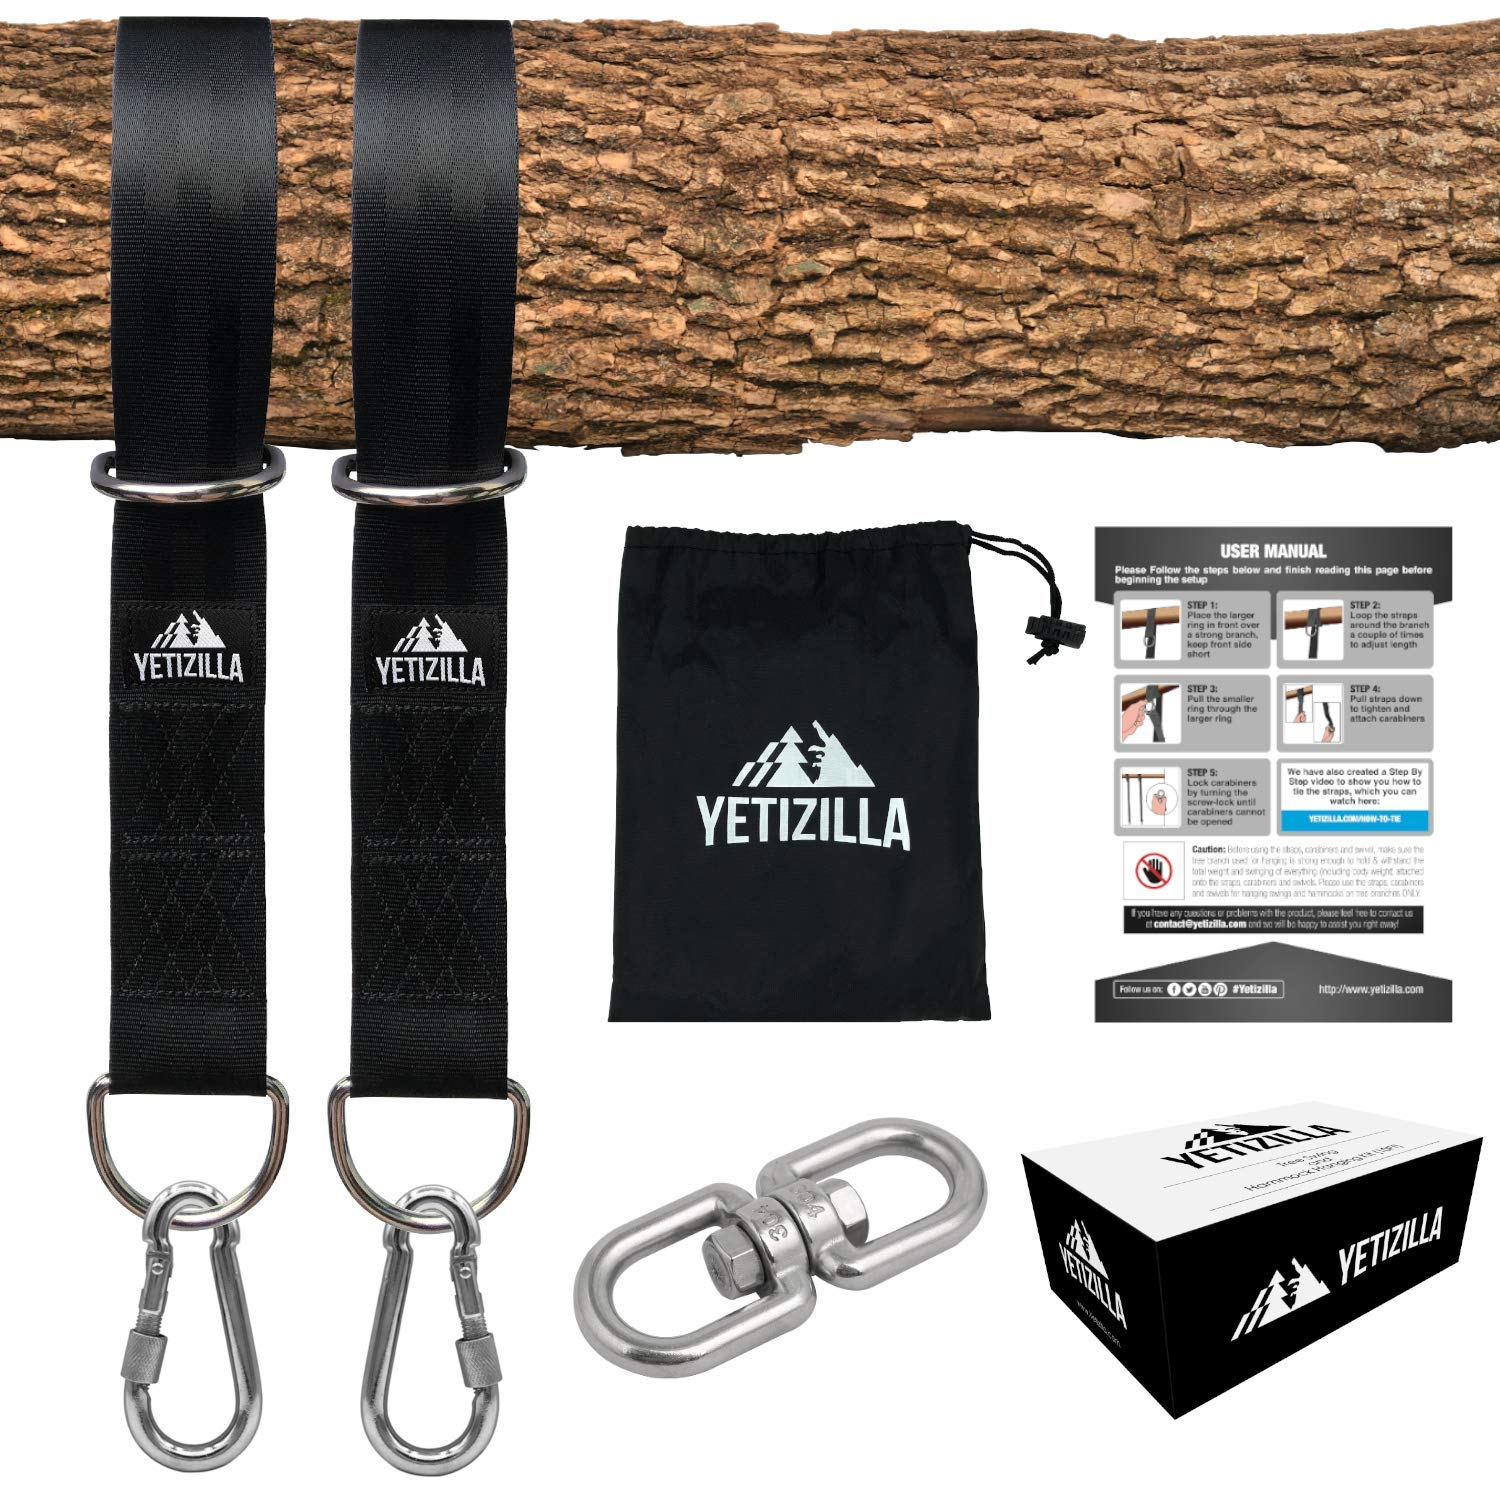 Yetizilla Tree Swing Hanging Kit 2X 10ft Extra Long Adjustable Tree Swing Straps with Swivel, Rustproof Lock-Screw Carabiners & Strong Hooks -Portable Hammock Hanger Accessories - Holds 2000lbs by Yetizilla